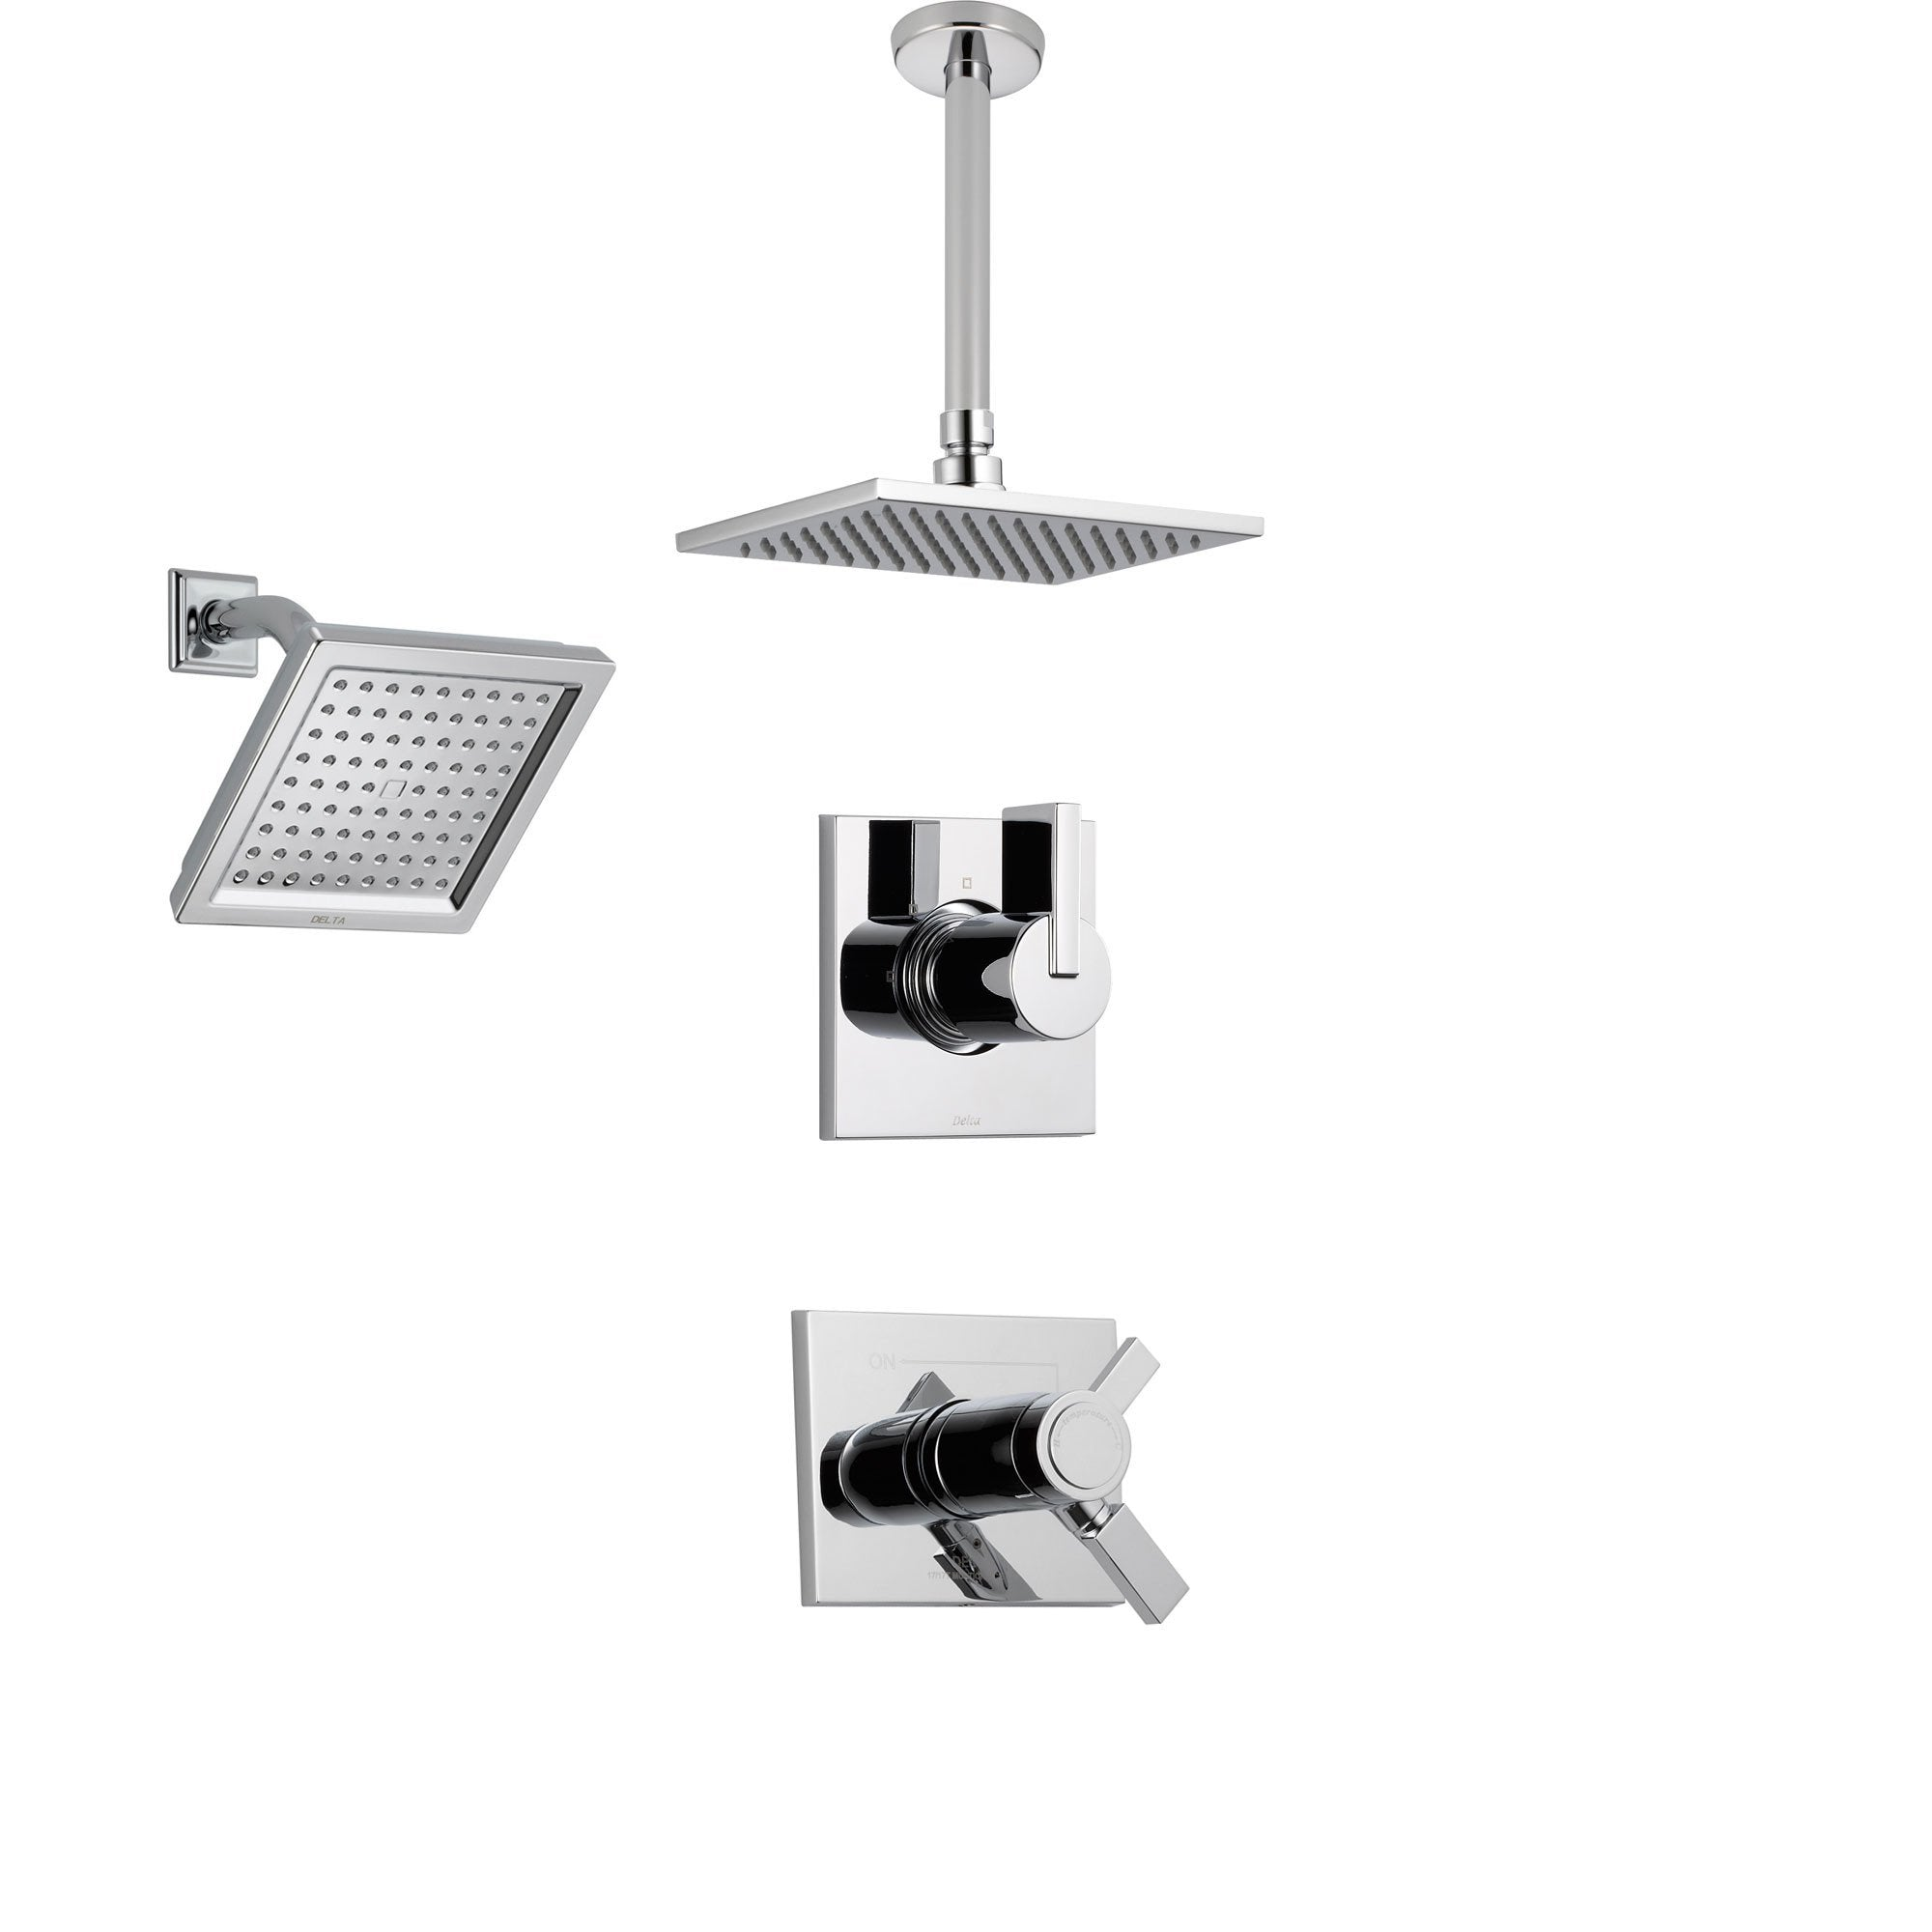 Delta Vero Chrome Shower System with Thermostatic Shower Handle, 3-setting Diverter, Large Square Ceiling Mount Rain Showerhead, and Wall Mount Showerhead SS17T5383